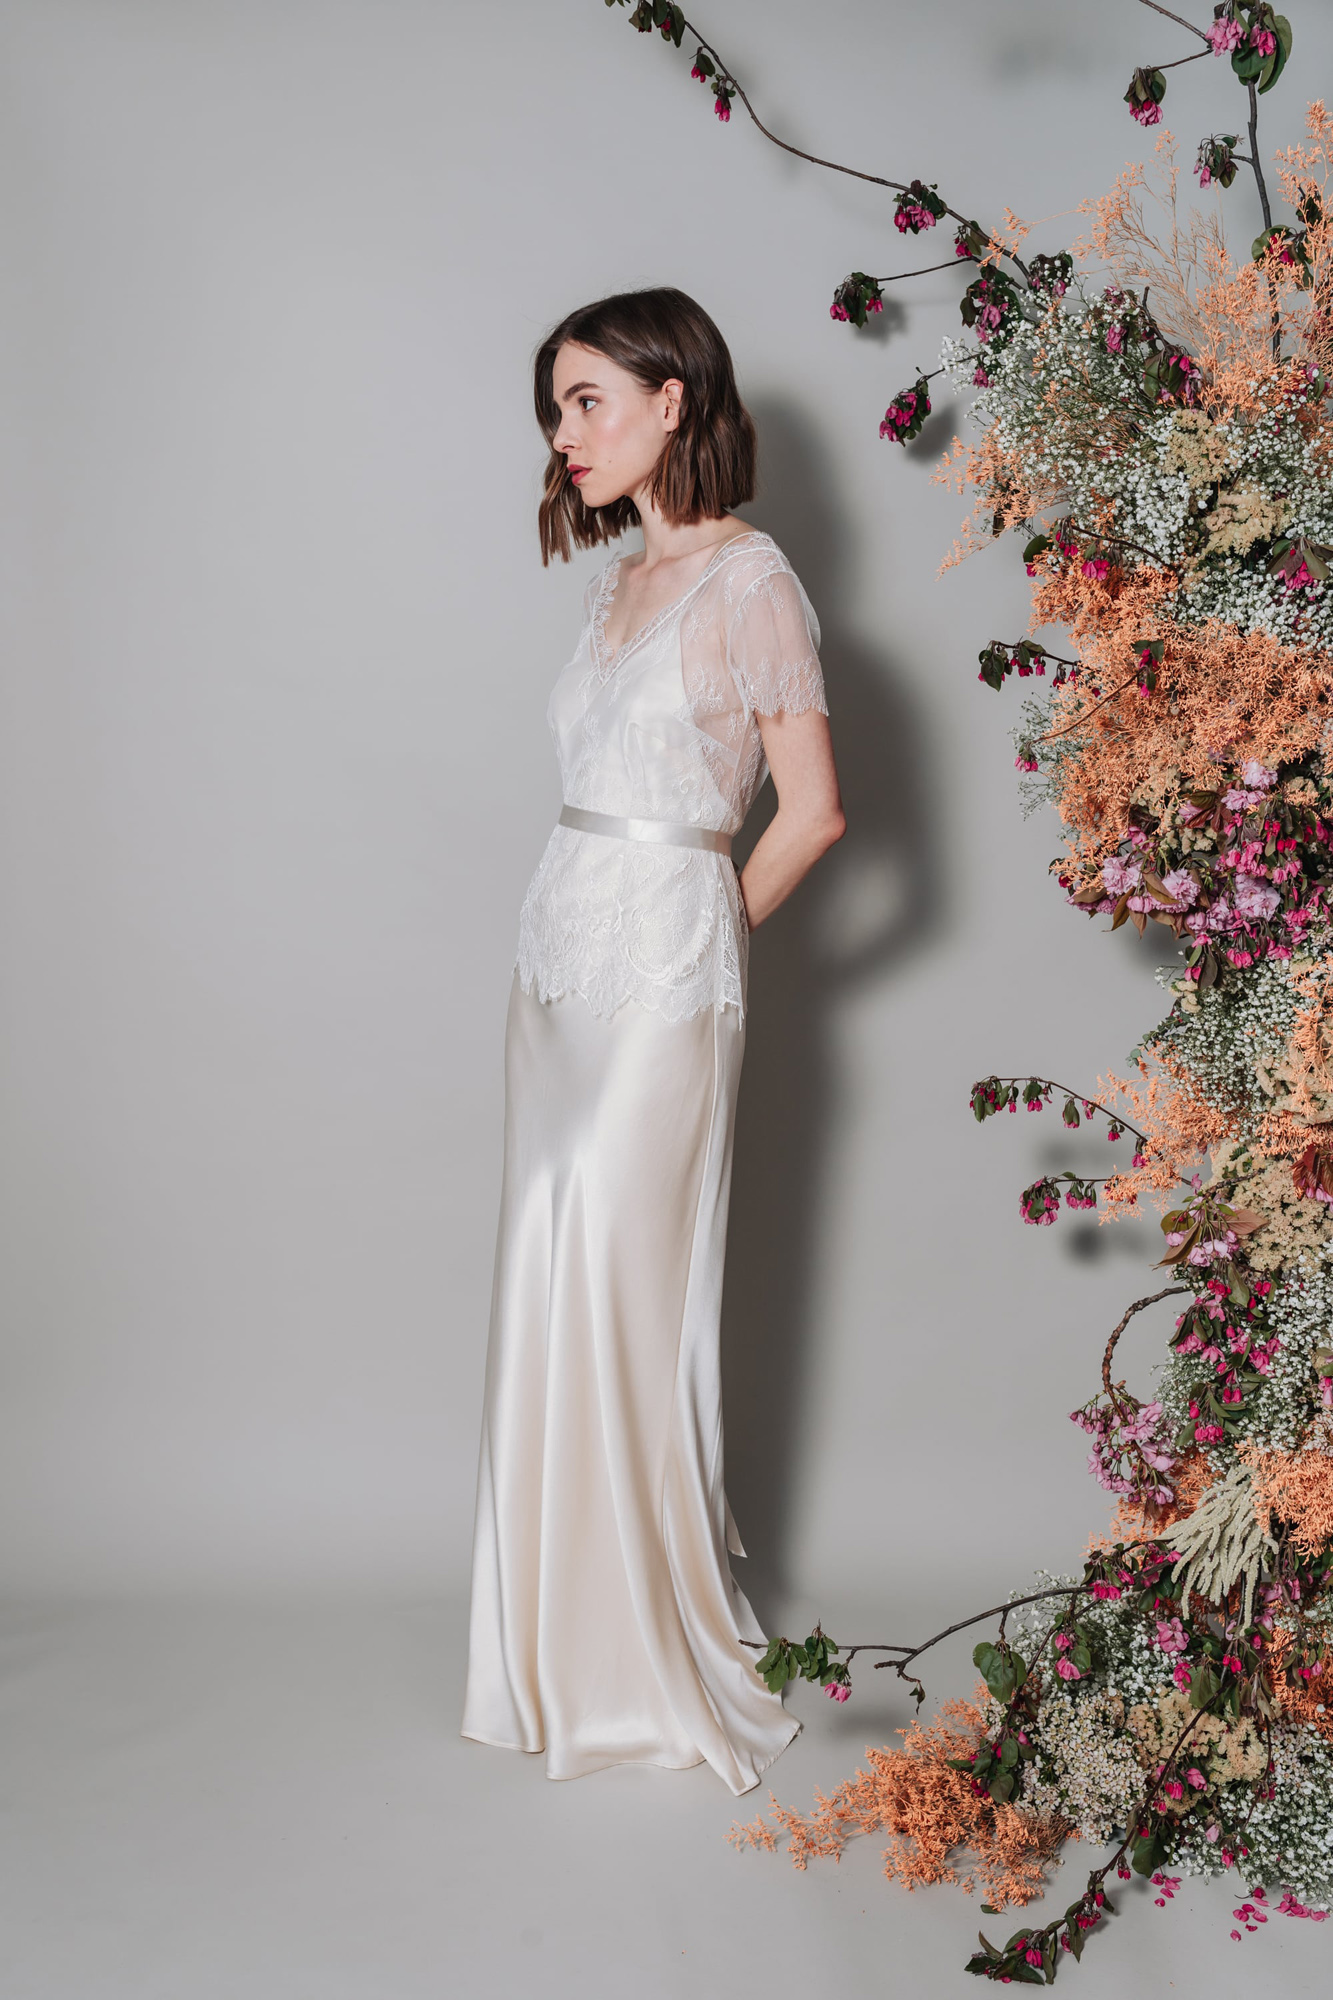 Kate-Beaumont-Sheffield-Lilac-Bridal-Separates-Lace-and-Silk-Wedding-Gown-6.jpg